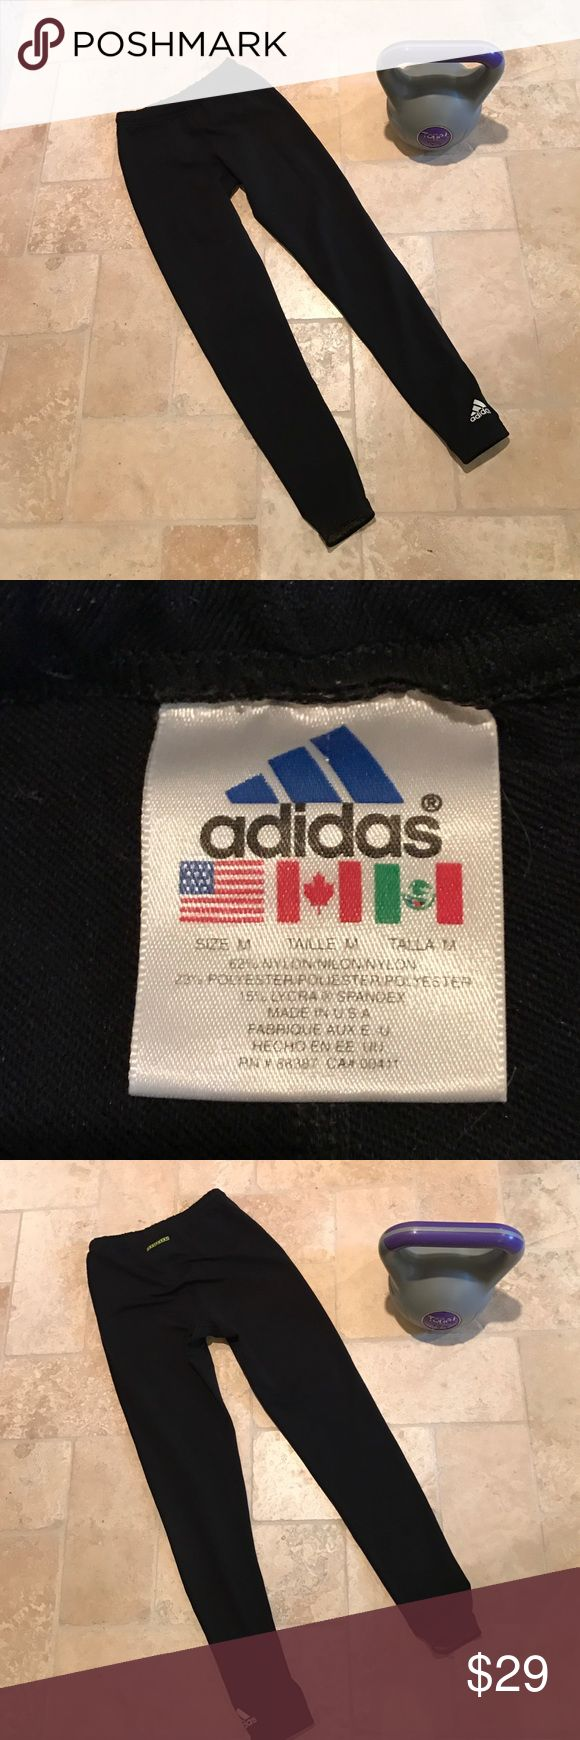 "Adidas leggings Excellent condition. Logo on left ankle. ""Equipment"" on tush.Made in the 🇺🇸 Nylon/Polyester/Spandex blend. Adidas Pants Leggings"